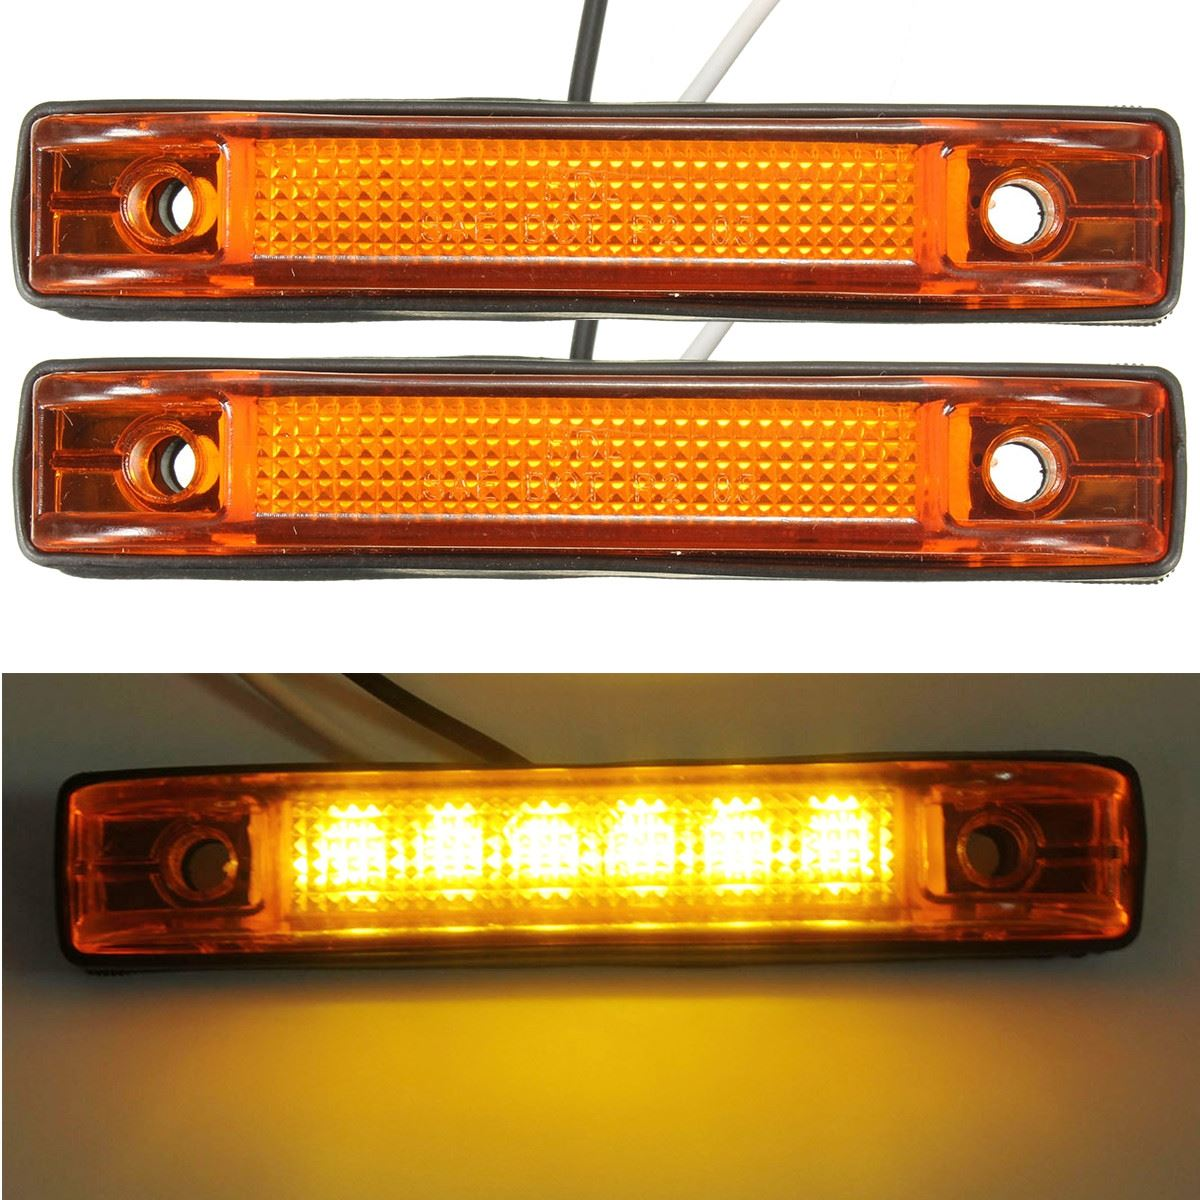 2Pcs 12V Yellow 6 LED Clearance Side Marker Light Indicator Lamp Truck Trailer RV Auto Car LED Turn signal Lights купить